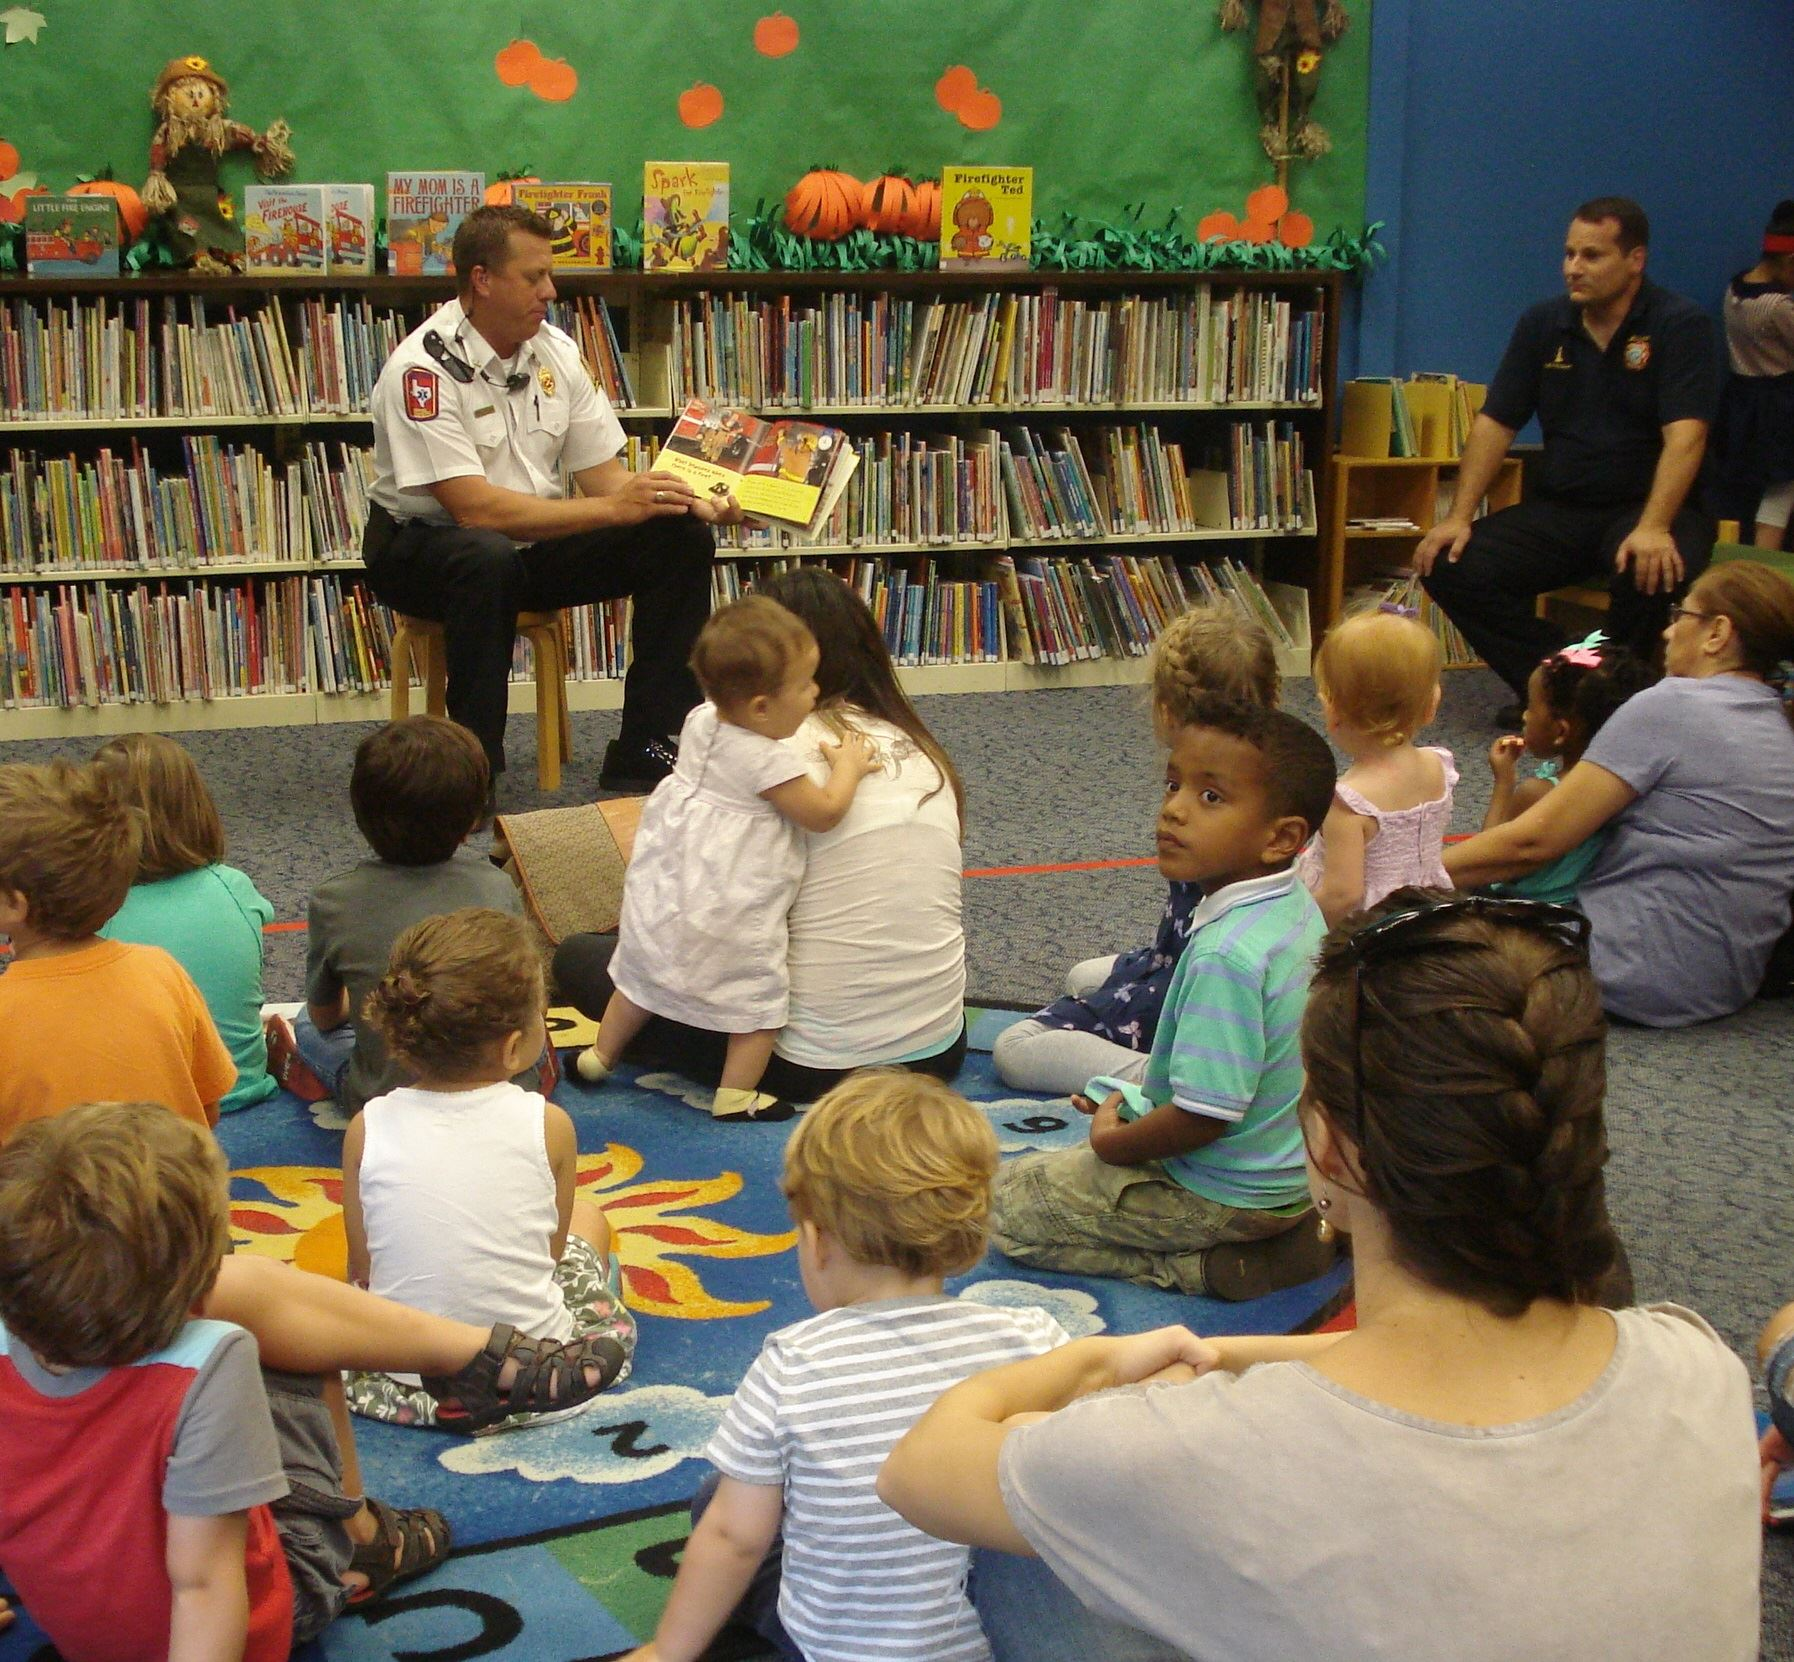 Fire Department reading at story time